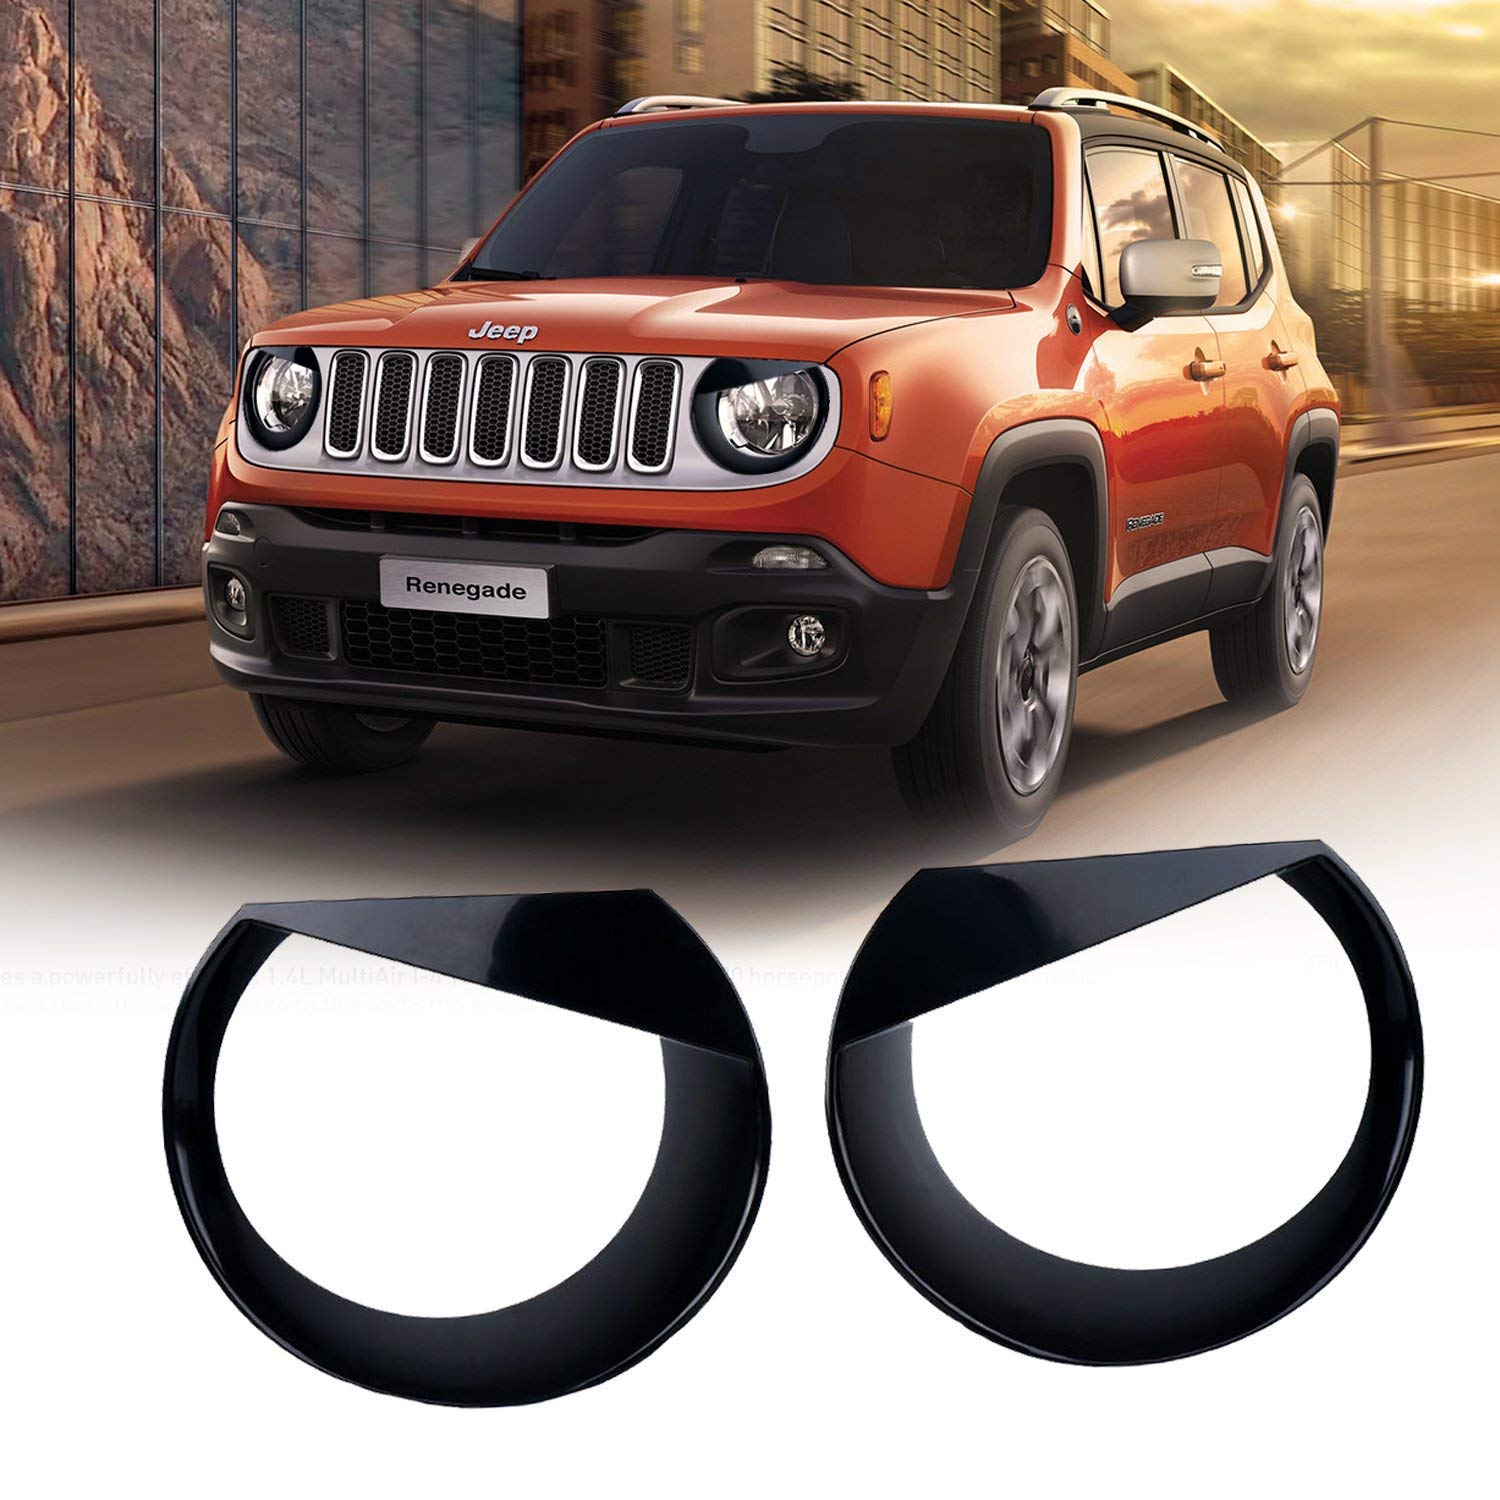 Yoursme Tail Light Cover Lamp Guard Rear Taillight Trim Cover Protector for 2015 2016 Jeep Renegade Set of 4 (BLACK) 4333250318